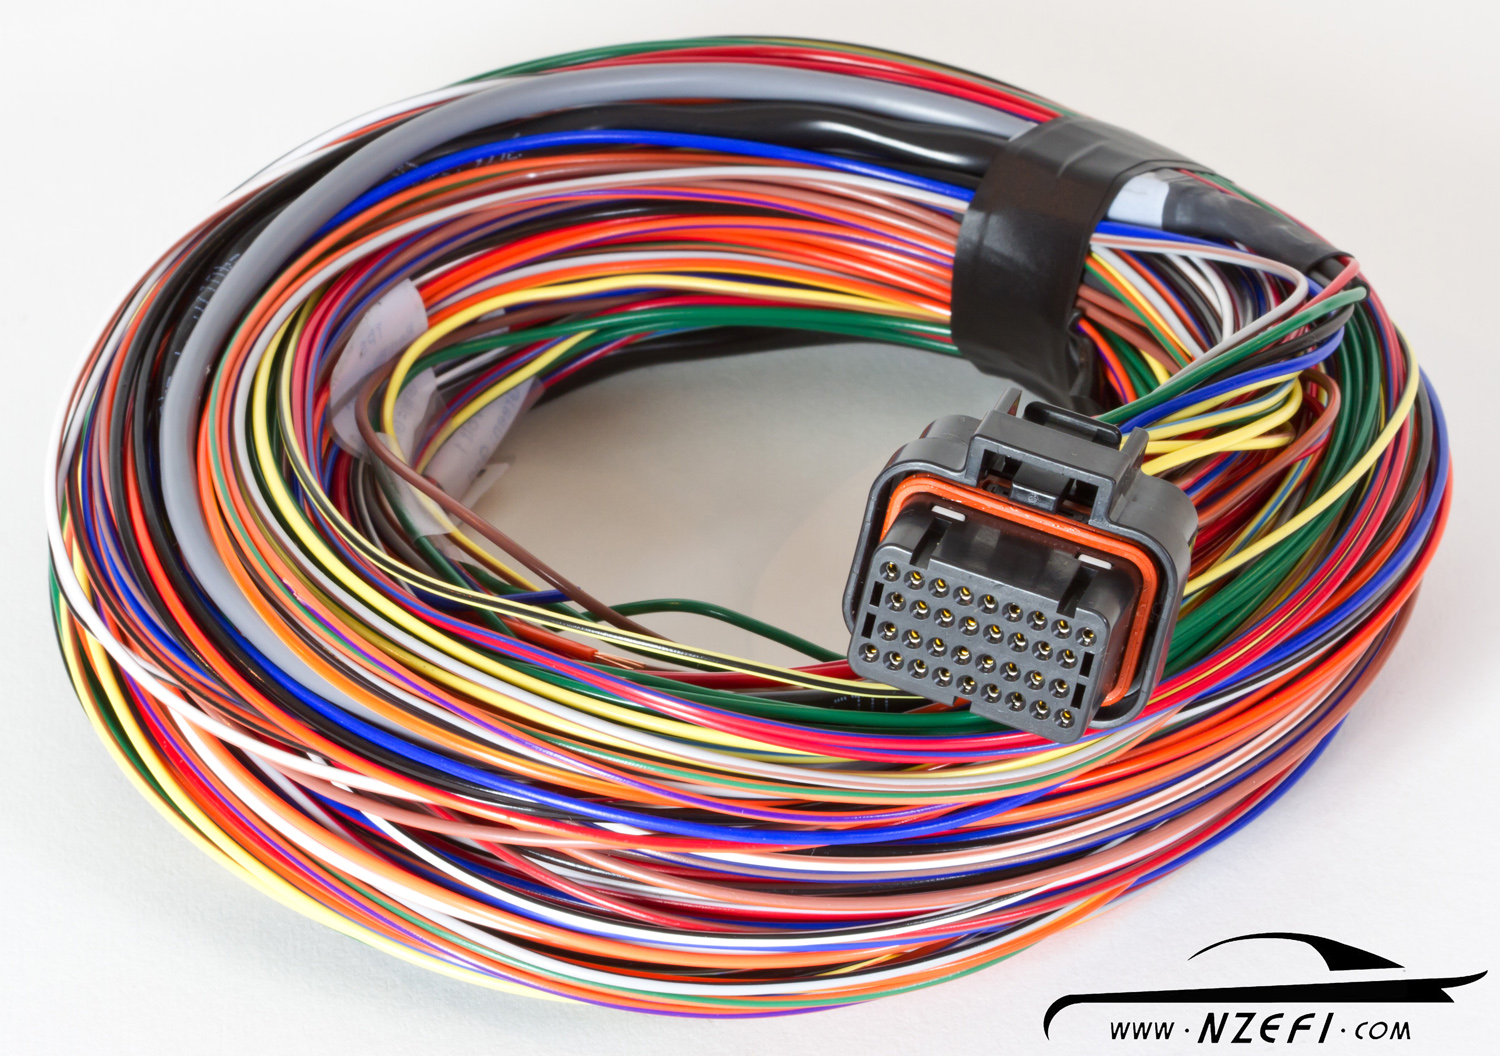 Link G4 Wiring Loom A 25 Metre Nzefi Performance Tuning Harness Documentation 25m